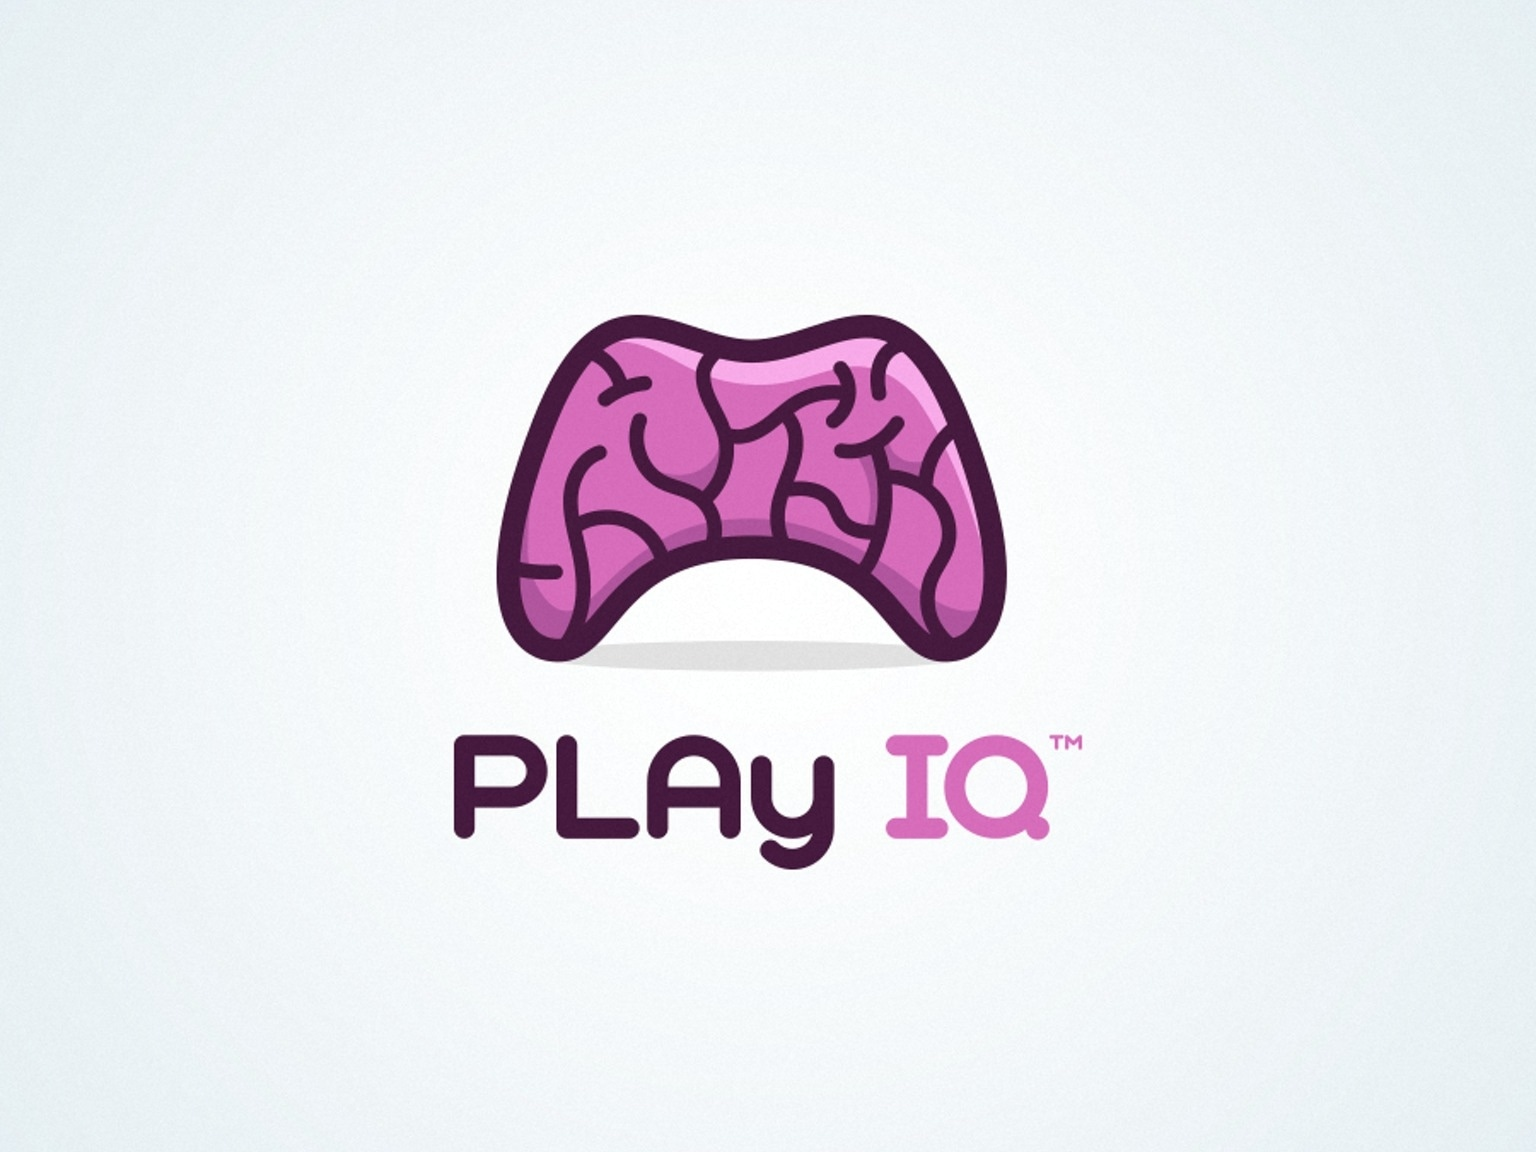 PlayIQ promo codes